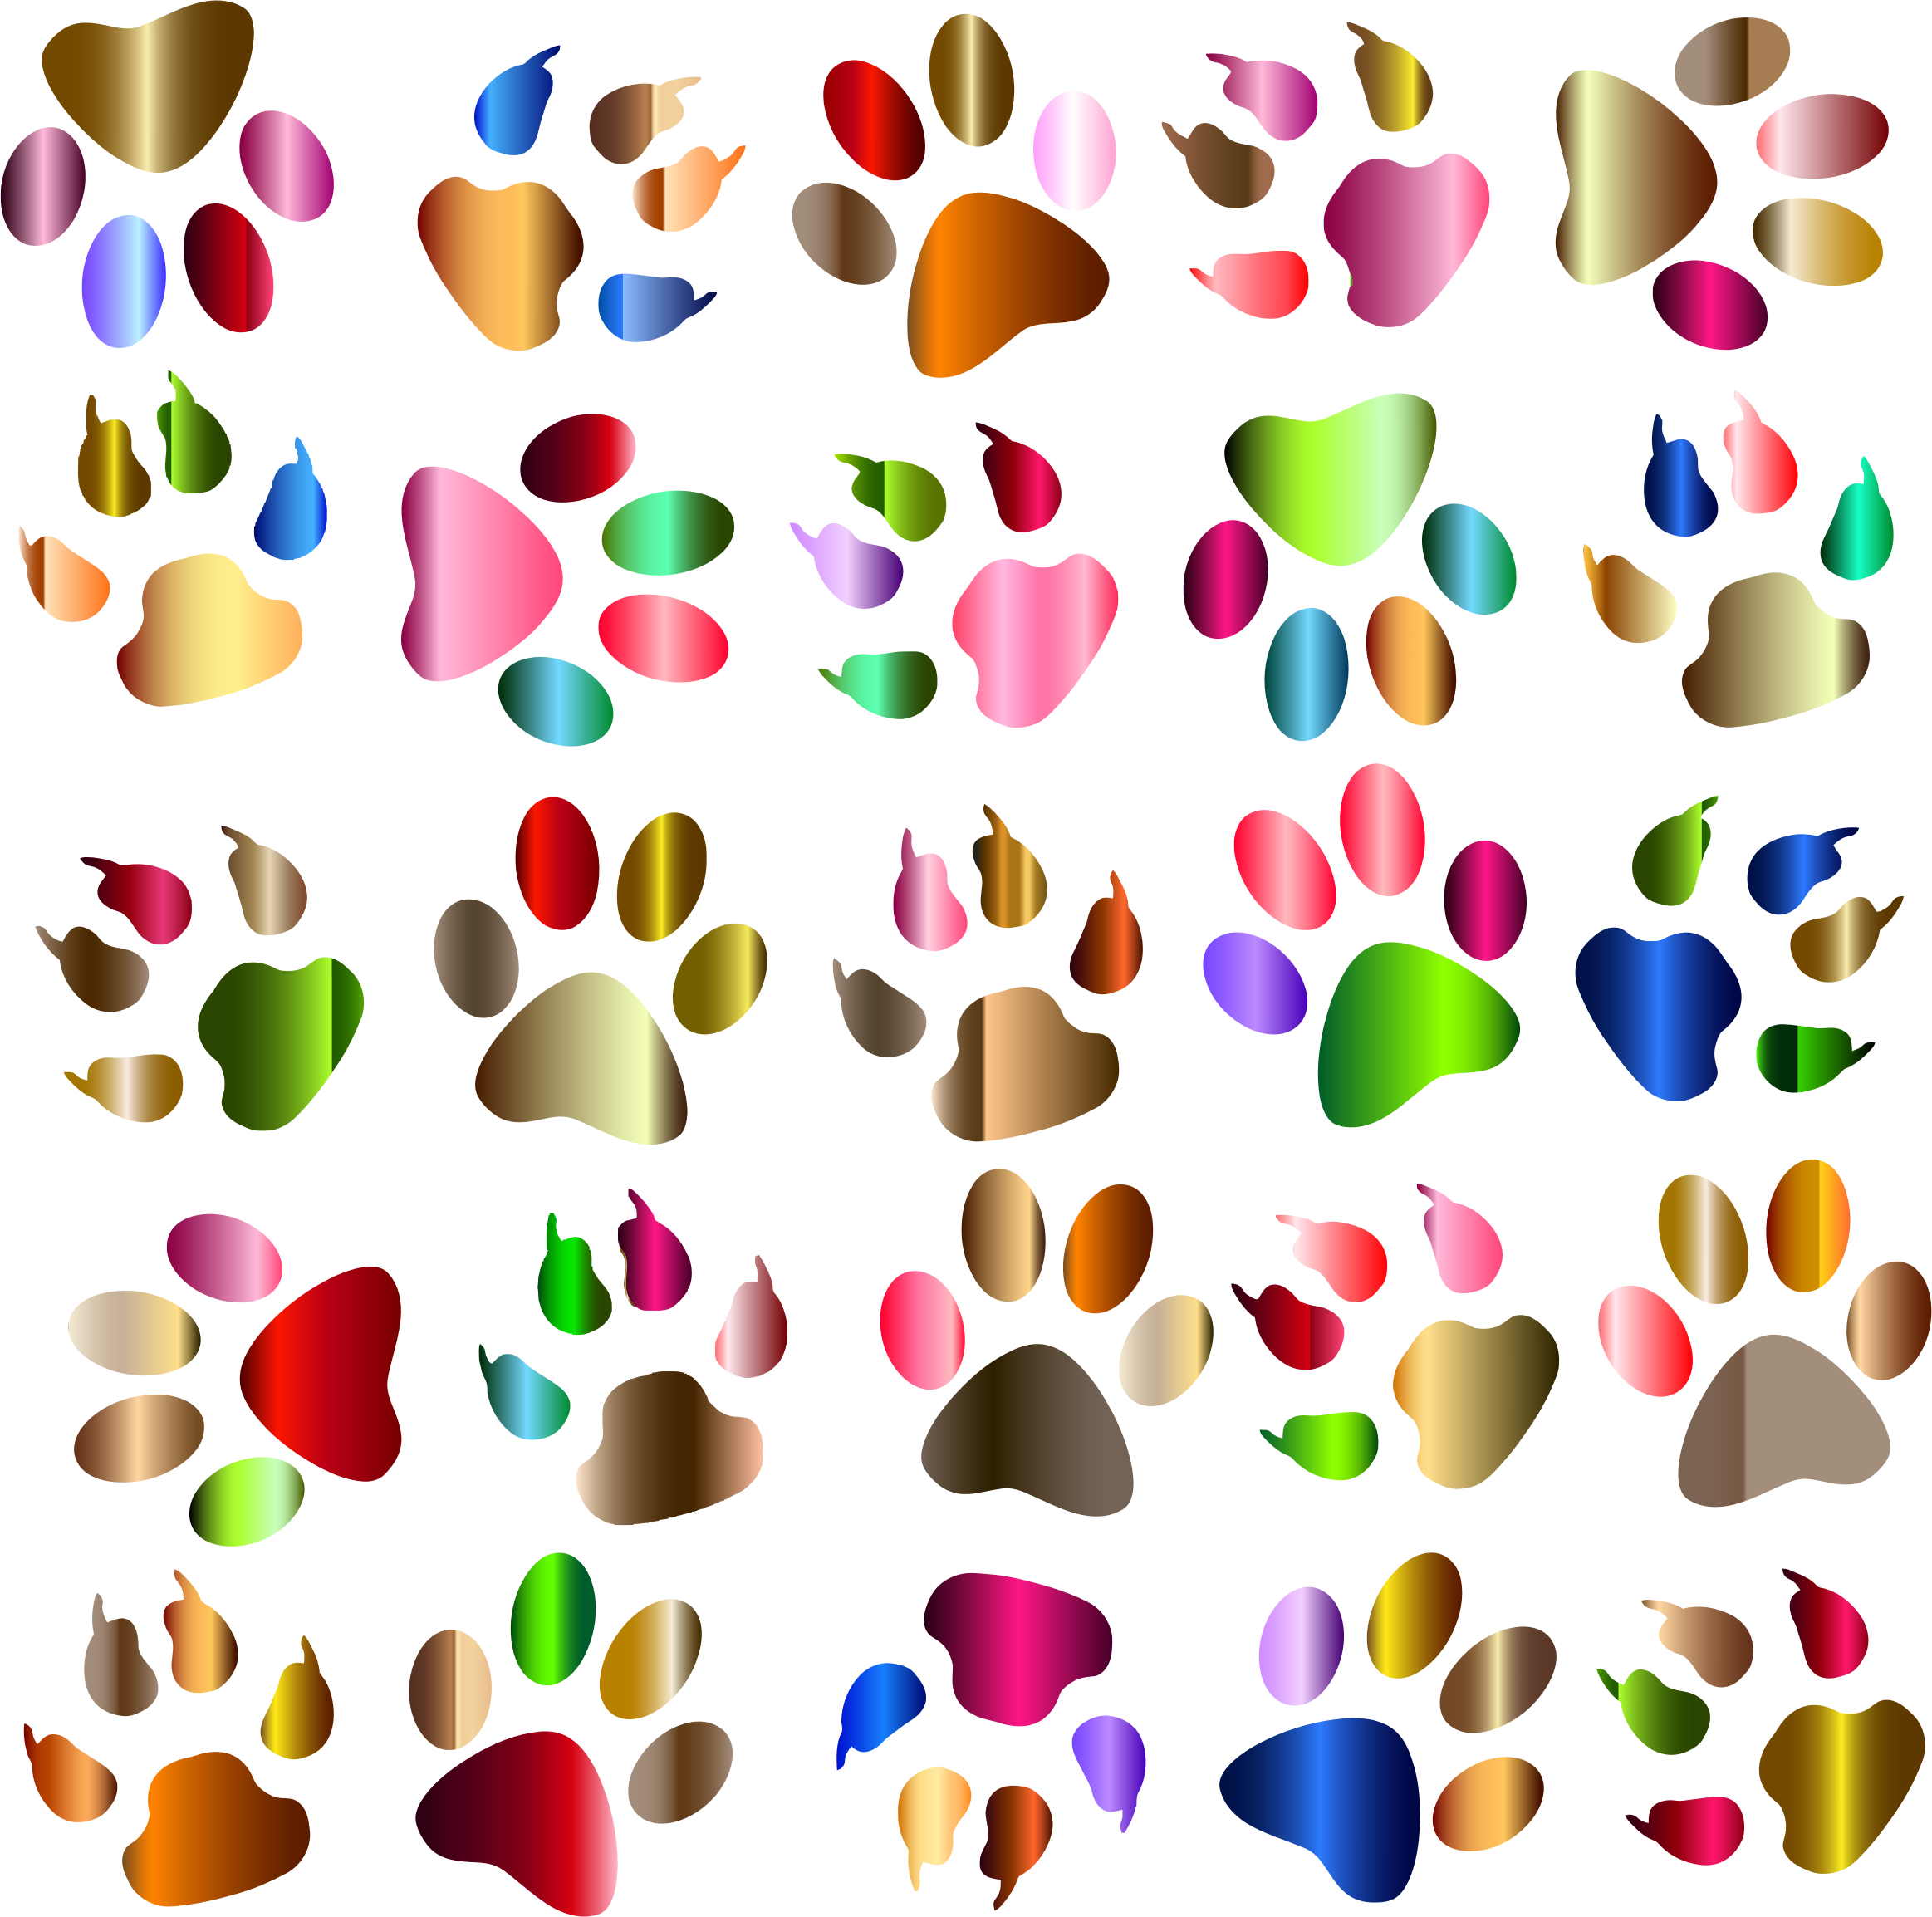 Clipart prints pattern background. Paw clip art colorful royalty free library